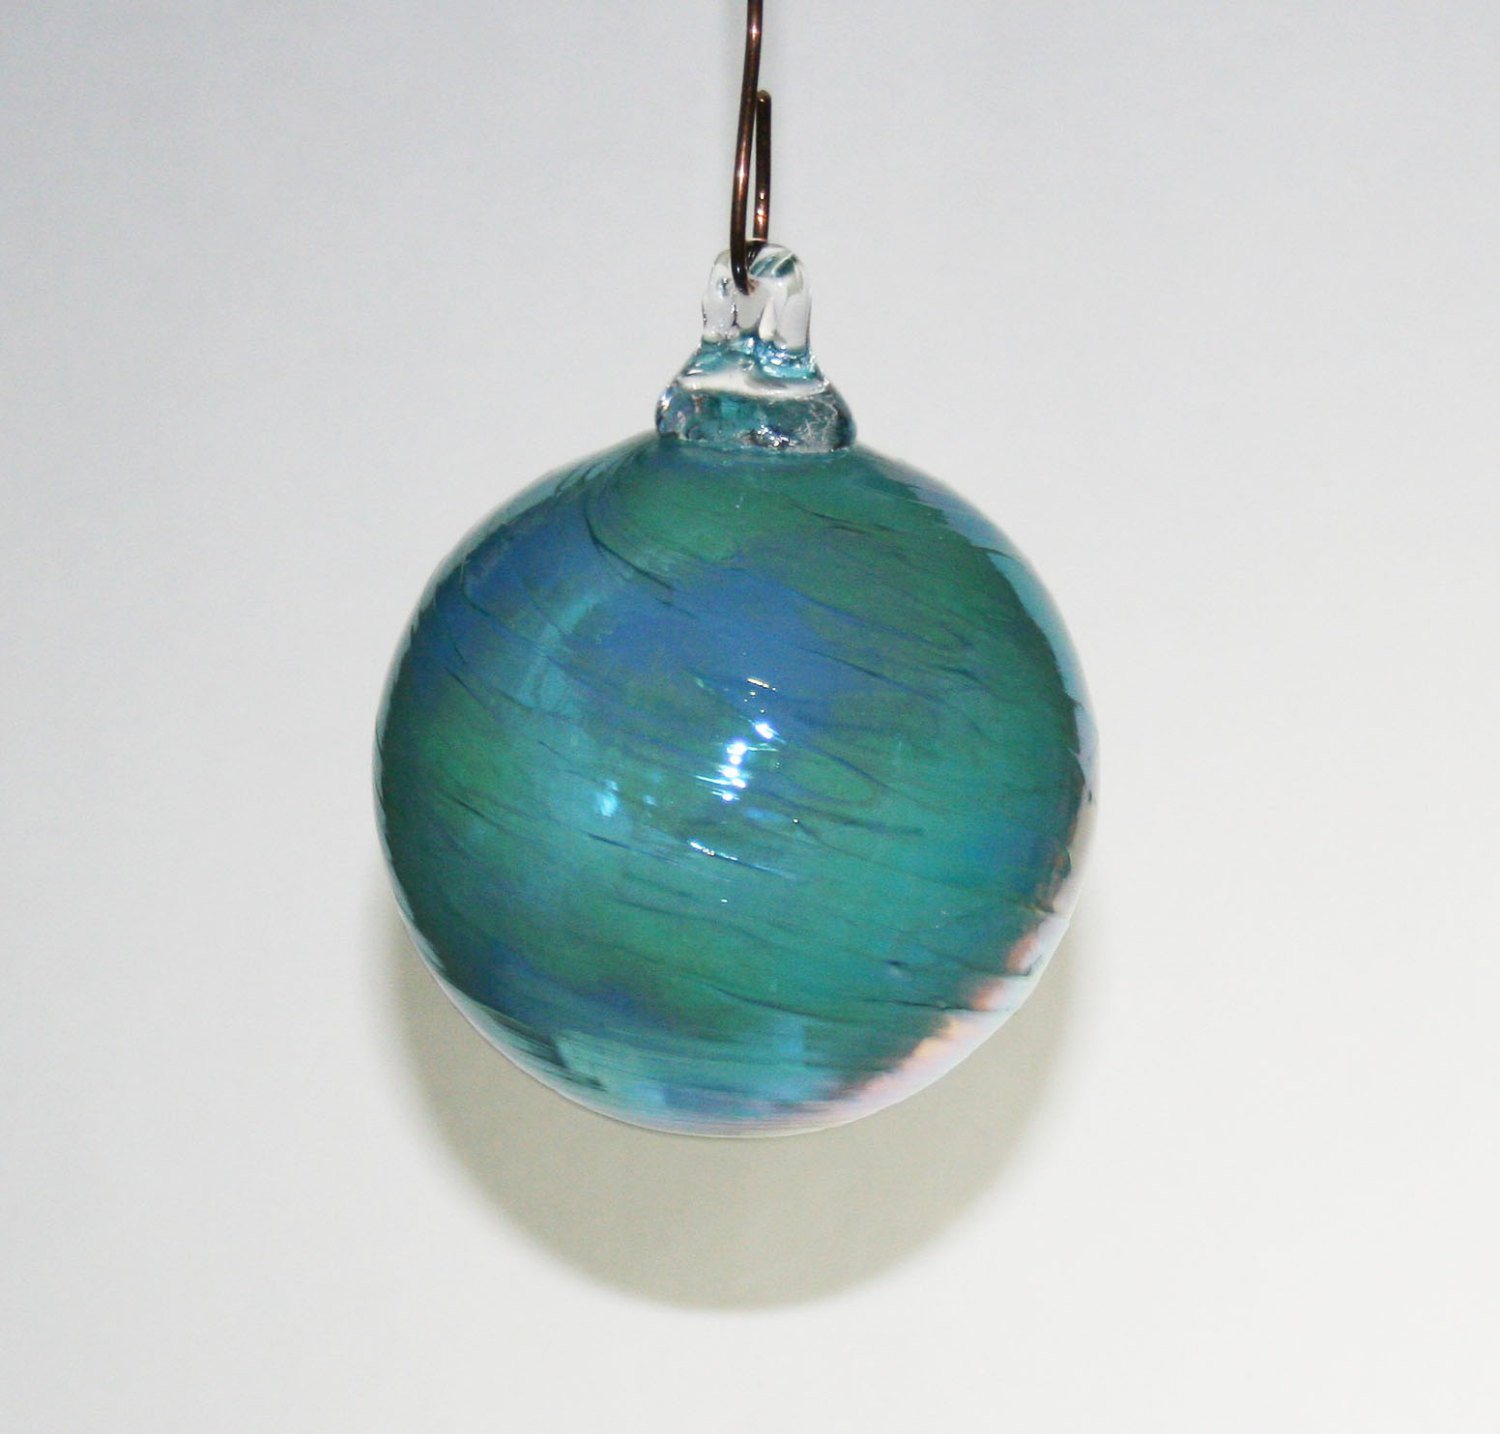 Glass Christmas ornaments New Hand Blown Glass Christmas ornaments Turquoise Of Incredible 46 Pics Glass Christmas ornaments